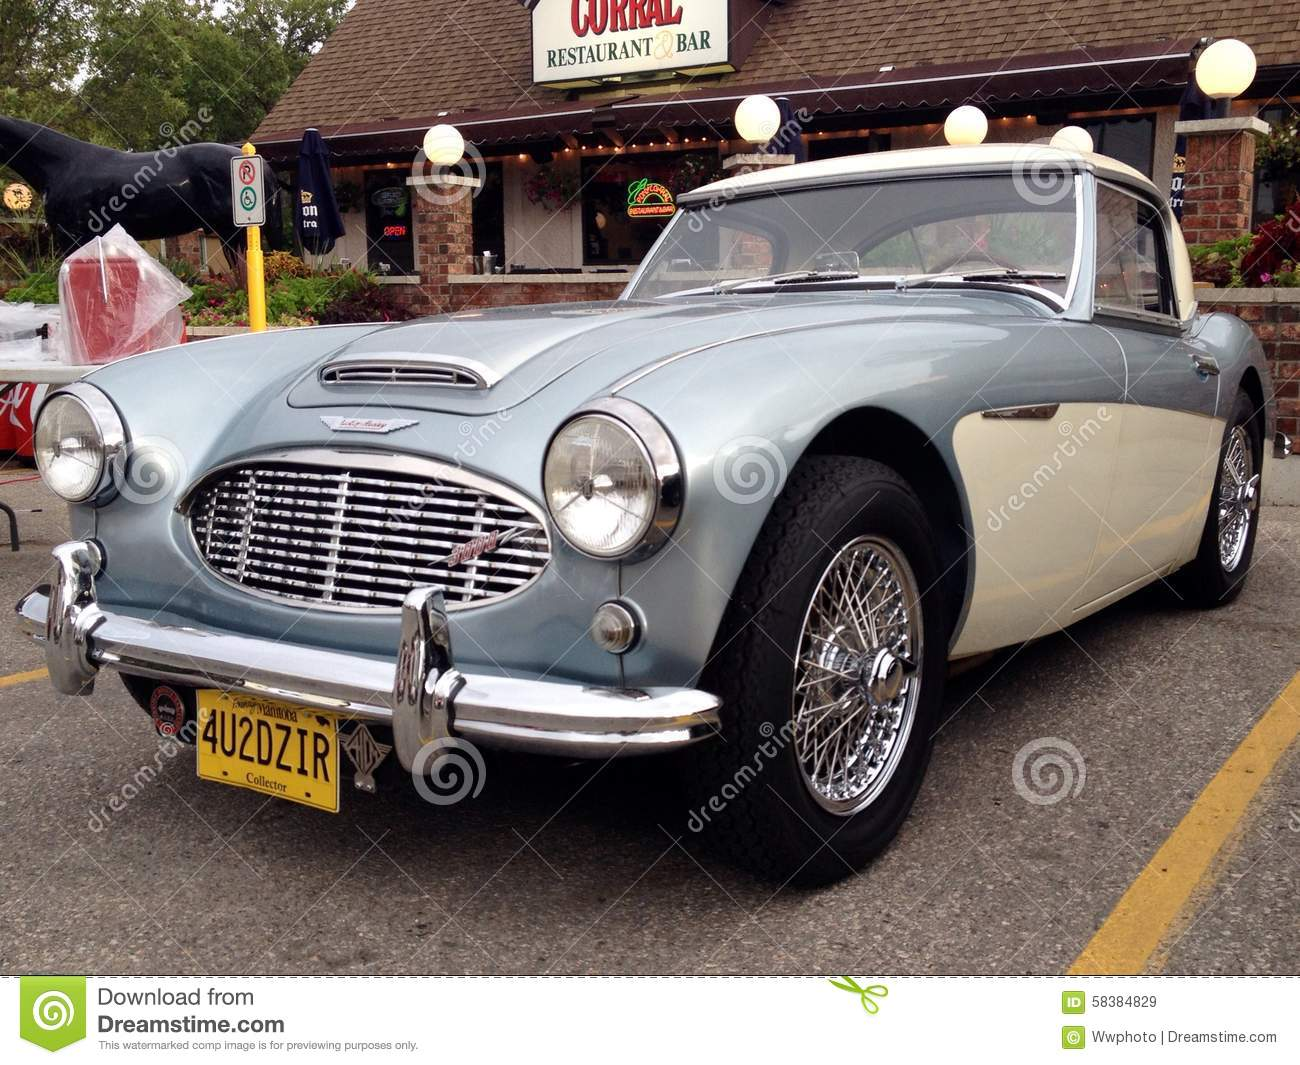 Exhibition Of Retro And Old Cars Editorial Stock Image - Image of ...